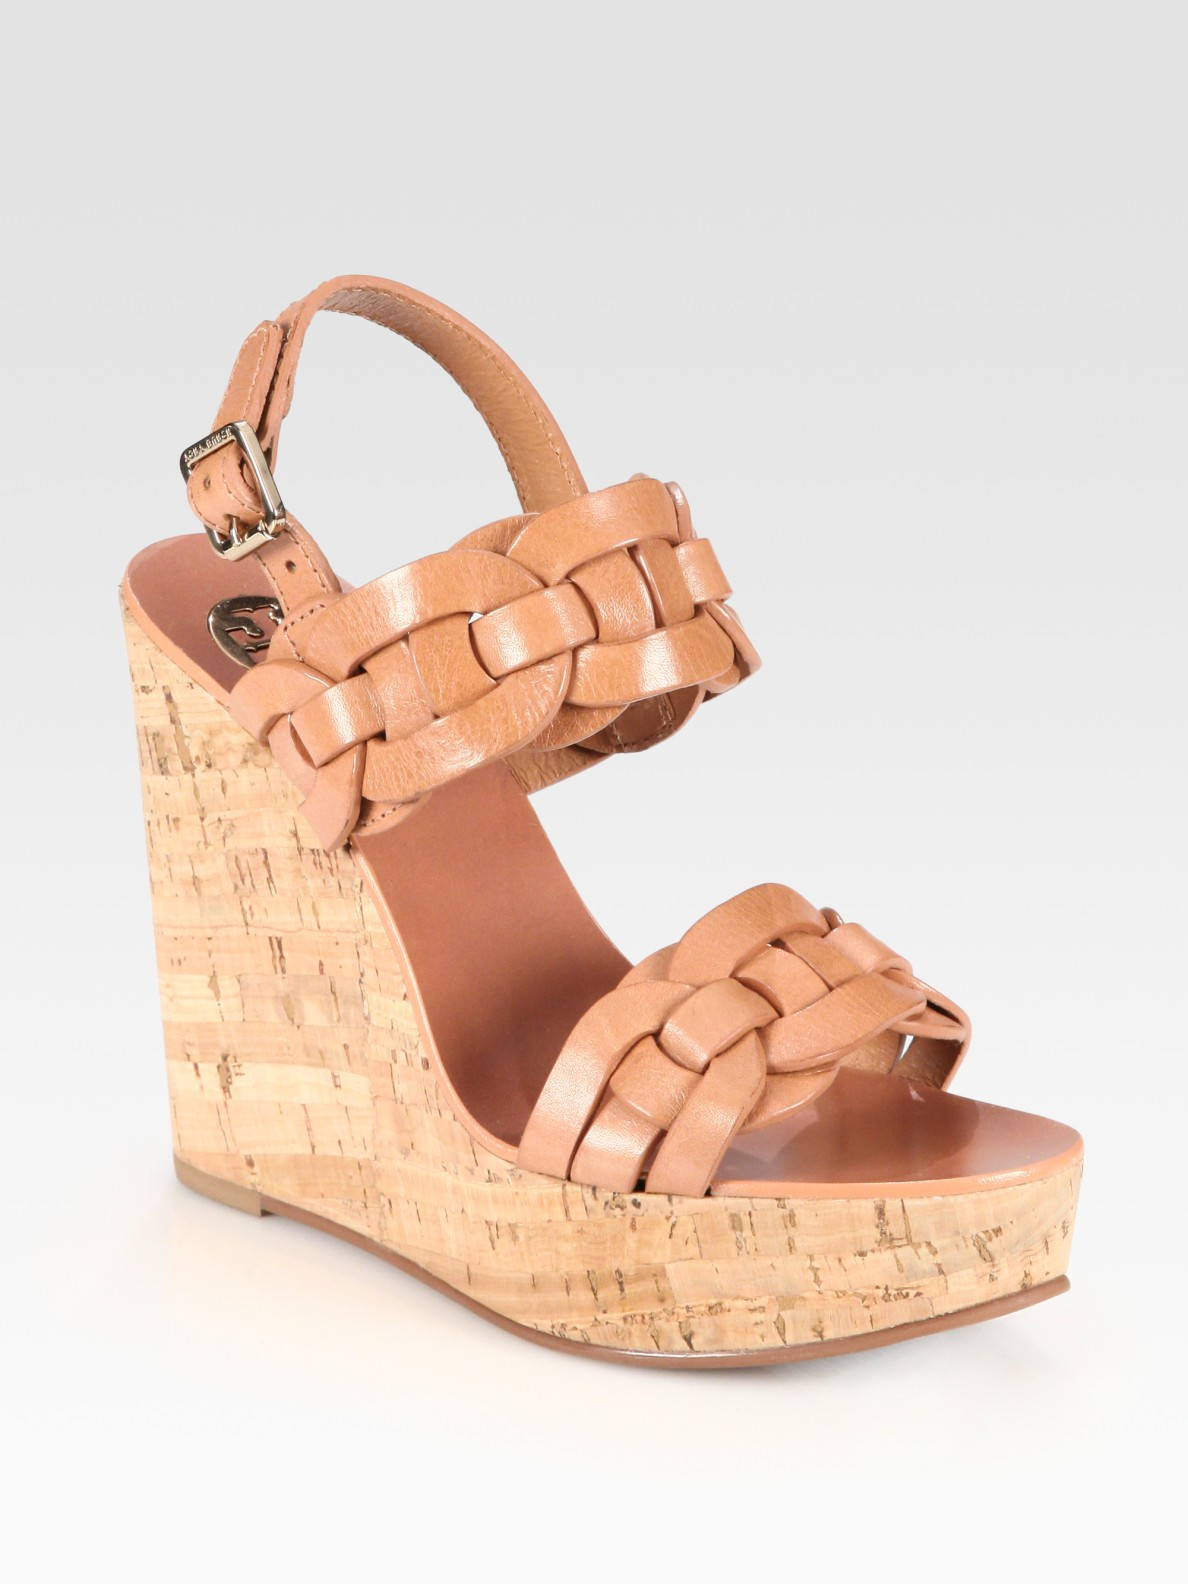 amazon footaction great deals cheap price Tory Burch Suede Slingback Wedges discount pick a best clearance supply 0mchVsd